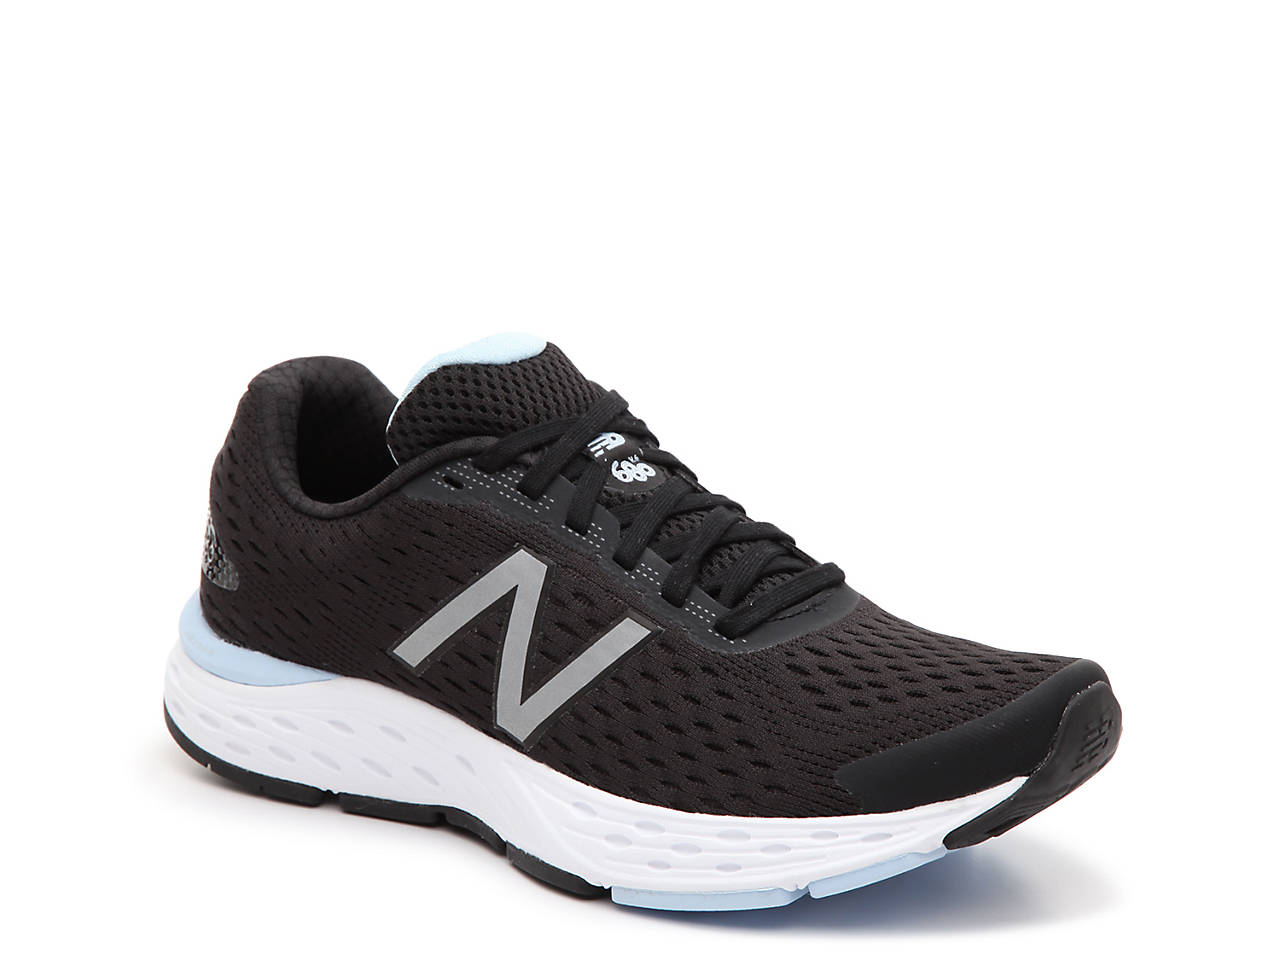 51acfc8b7706 New Balance 680 v6 Lightweight Running Shoe - Women s Women s Shoes ...